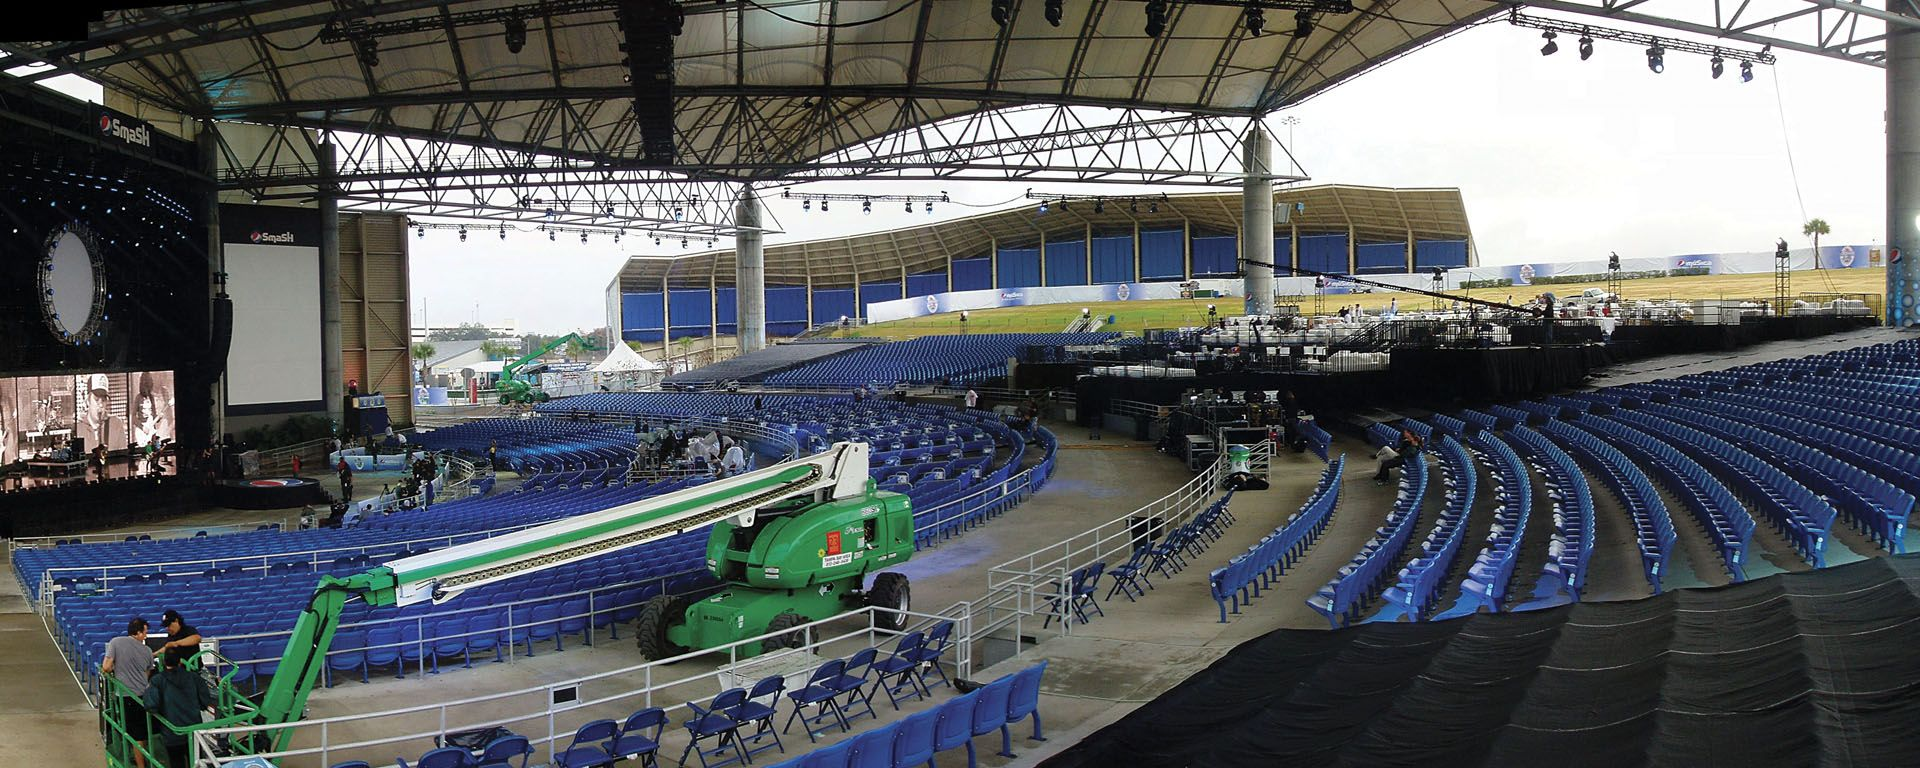 Ford Amphitheater Tampa Seating Capacity